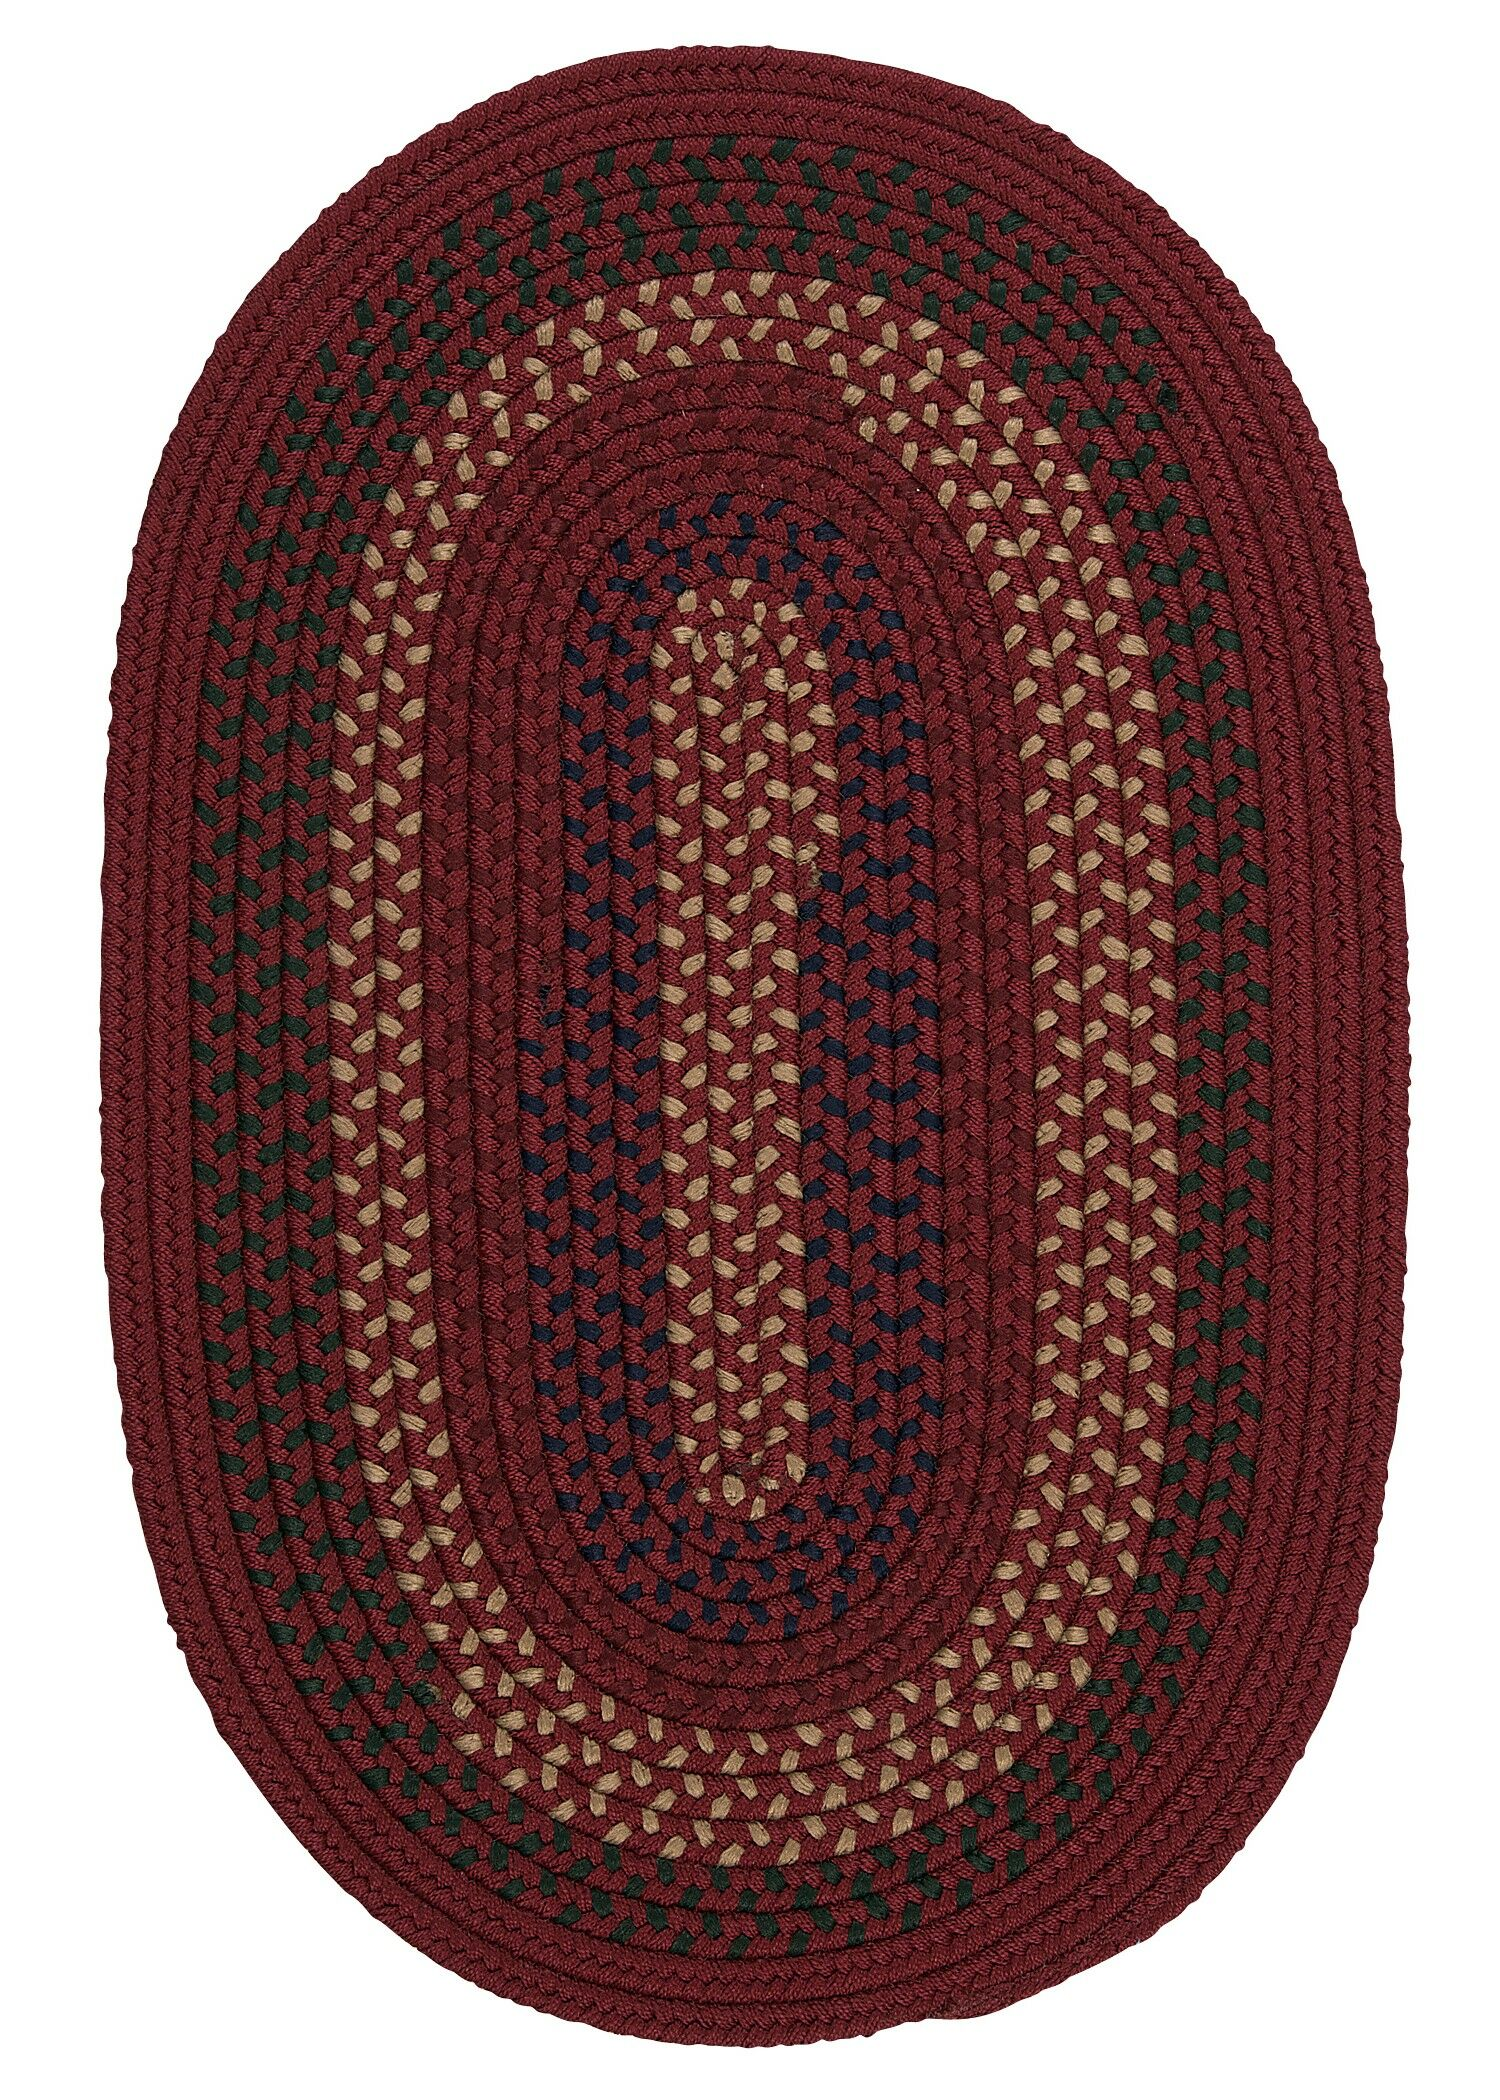 Omaha Deep Russet Indoor/Outdoor Area Rug Rug Size: Oval 4' x 6'